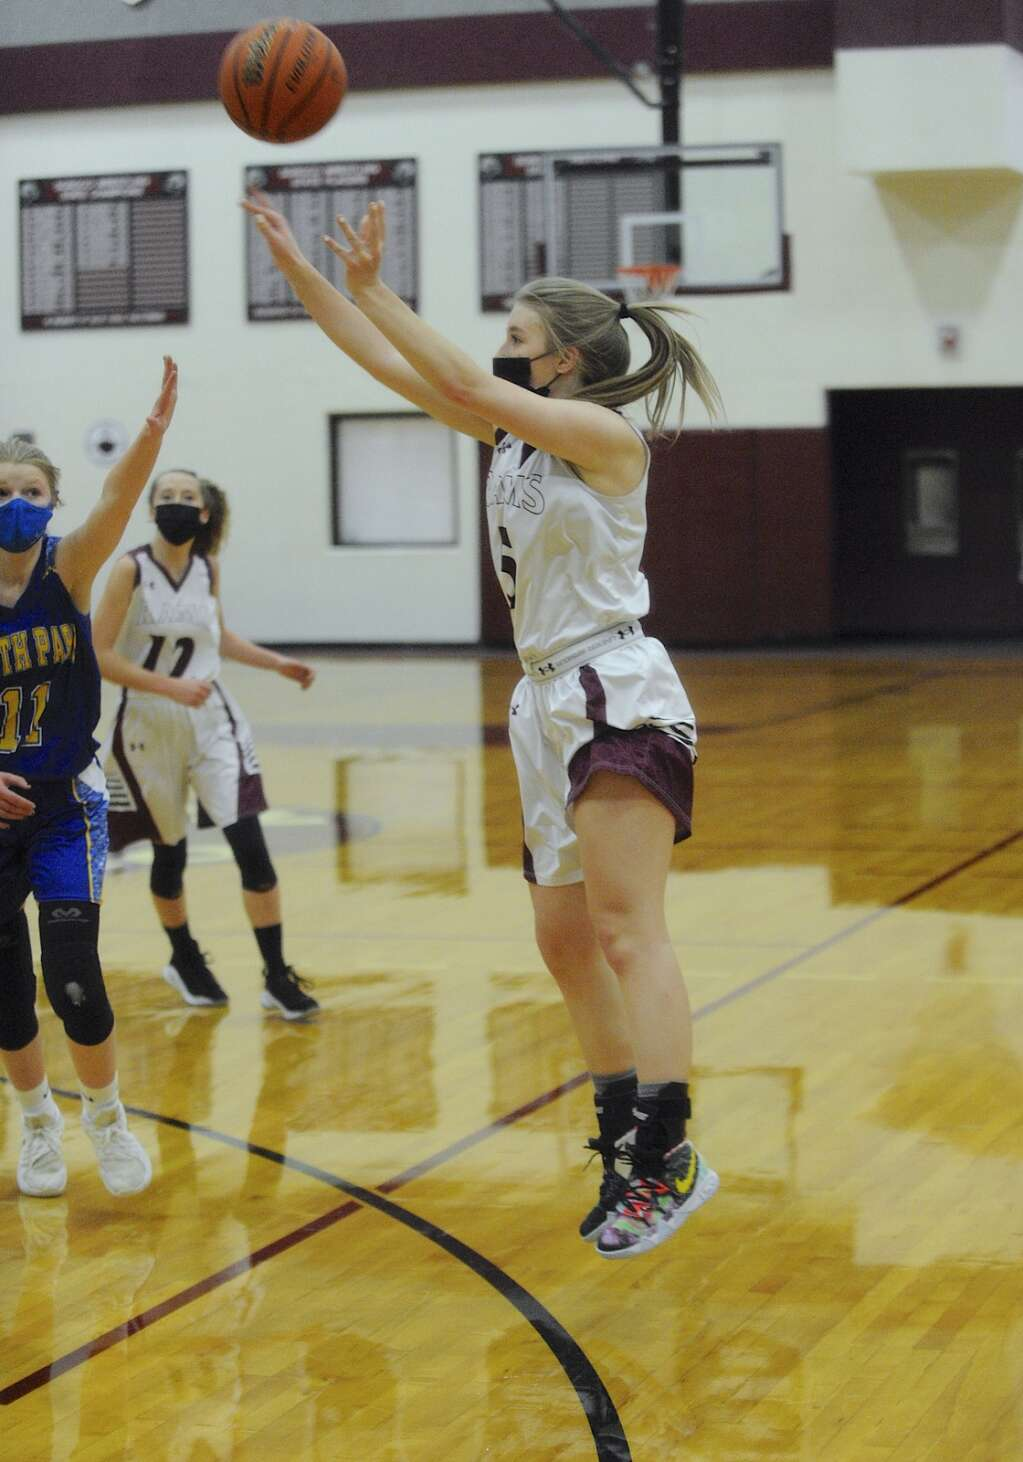 Soroco junior Peyton Parker pulls up for a 3-point shot during a game in Oak Creek on Saturday afternoon. (Photo by Shelby Reardon)